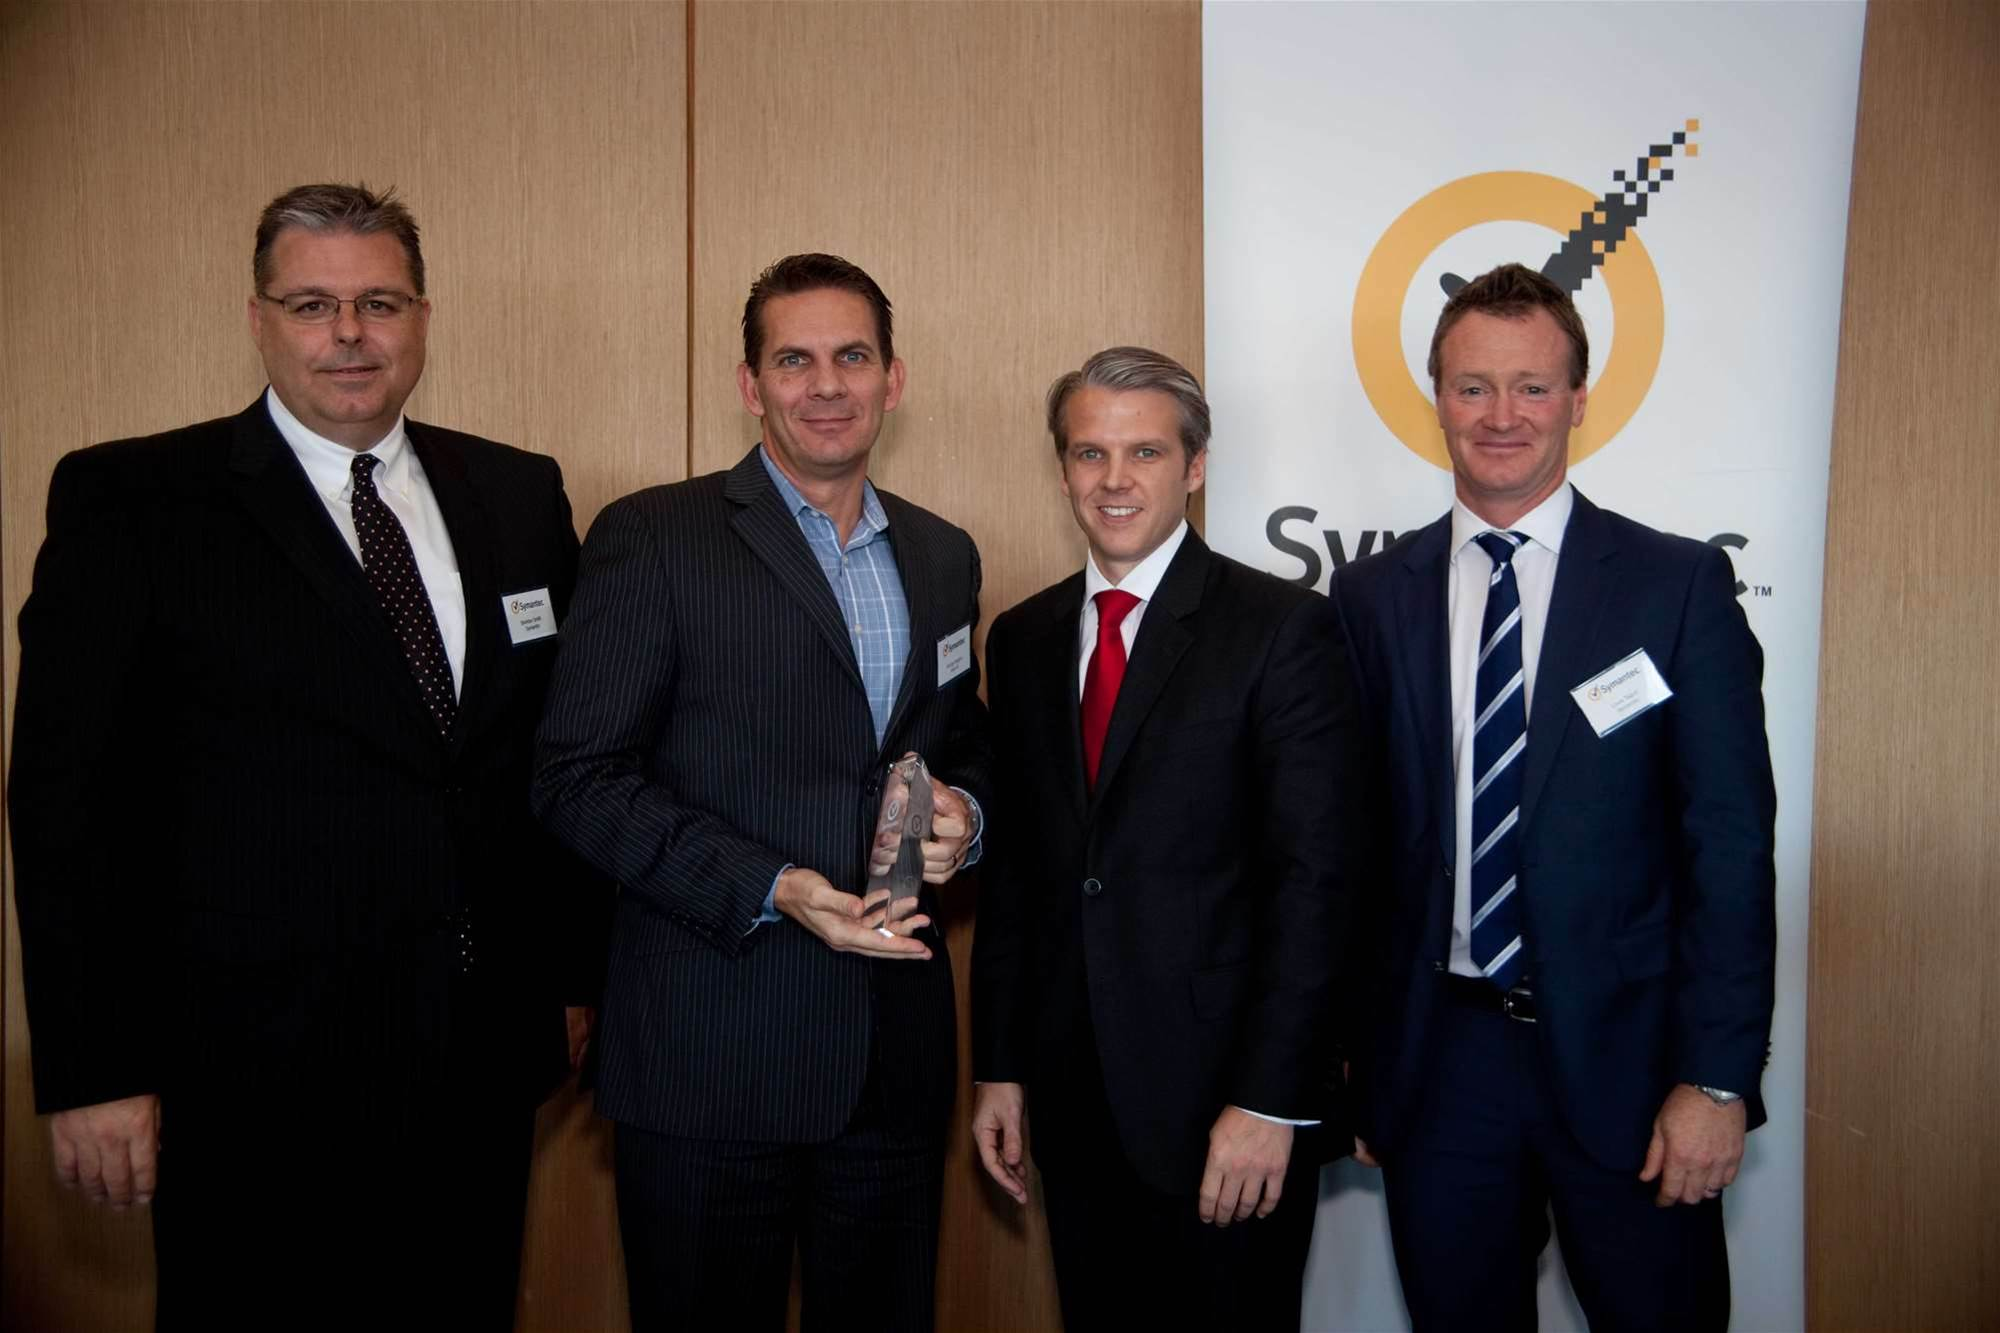 George Rodgers, national vendor manager with Data#3 (second from left) is presented with the Symantec specialised partner of the year award.